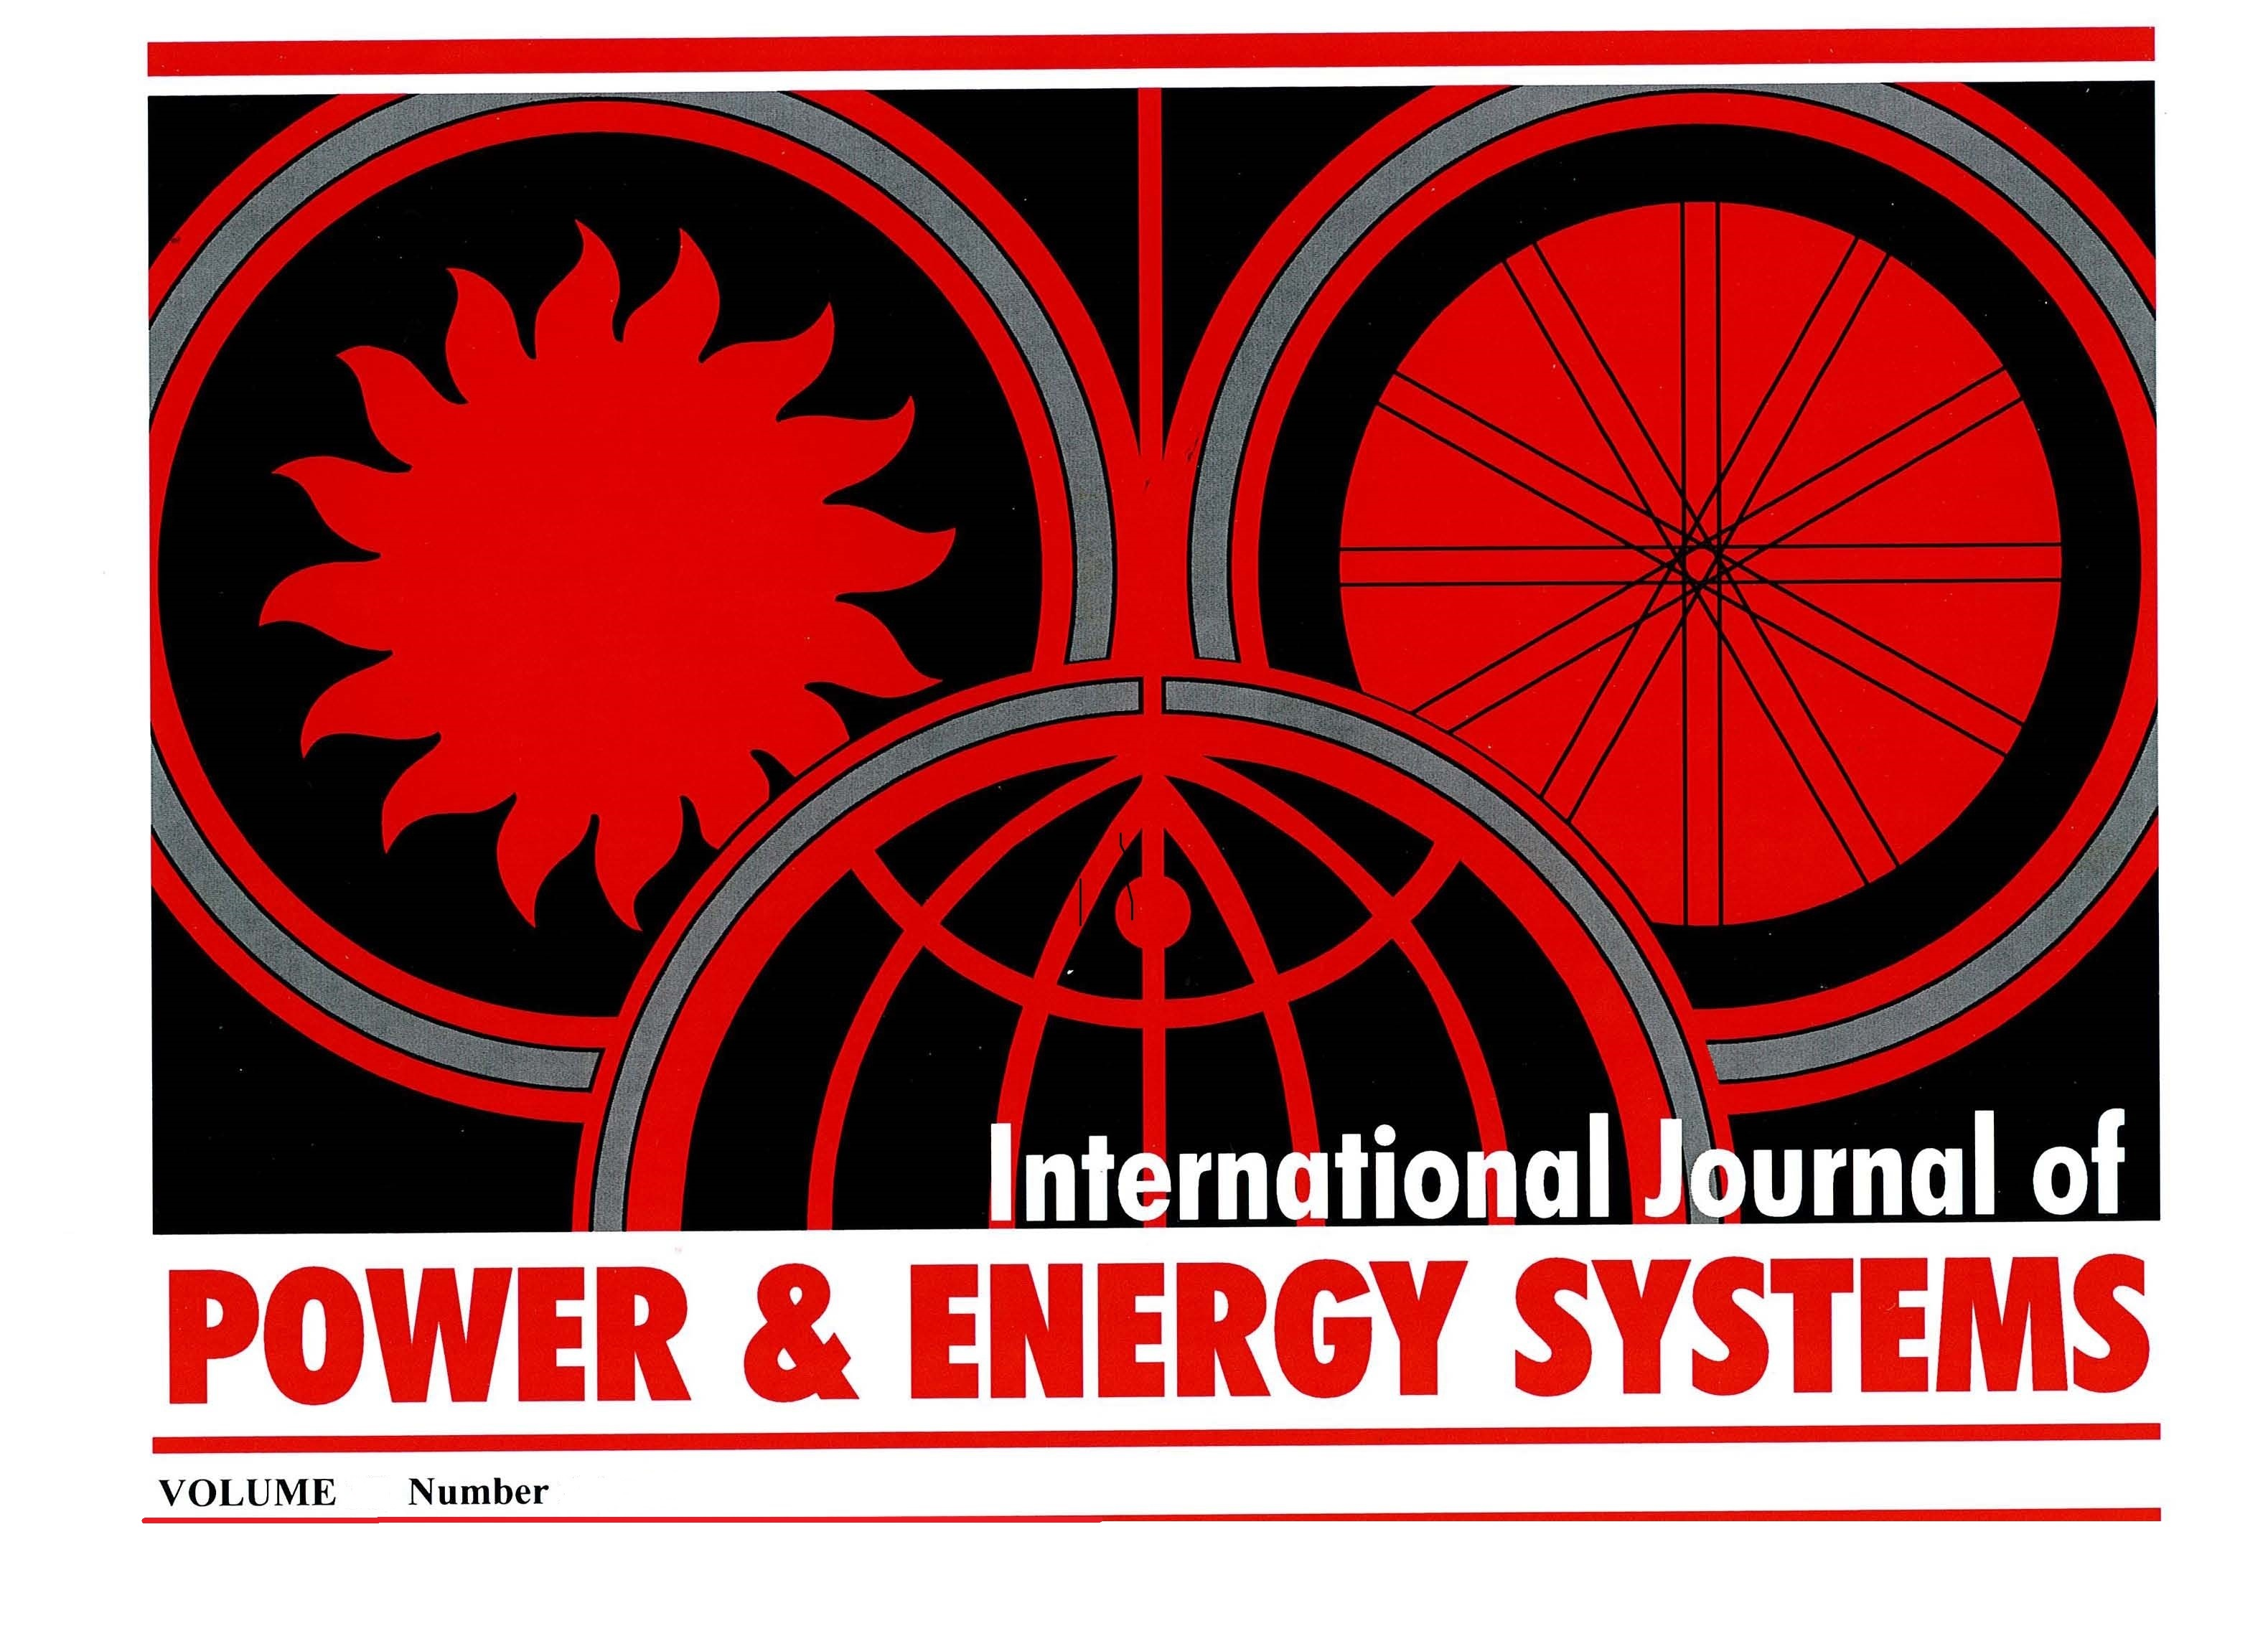 International Journal of Power & Energy Systems